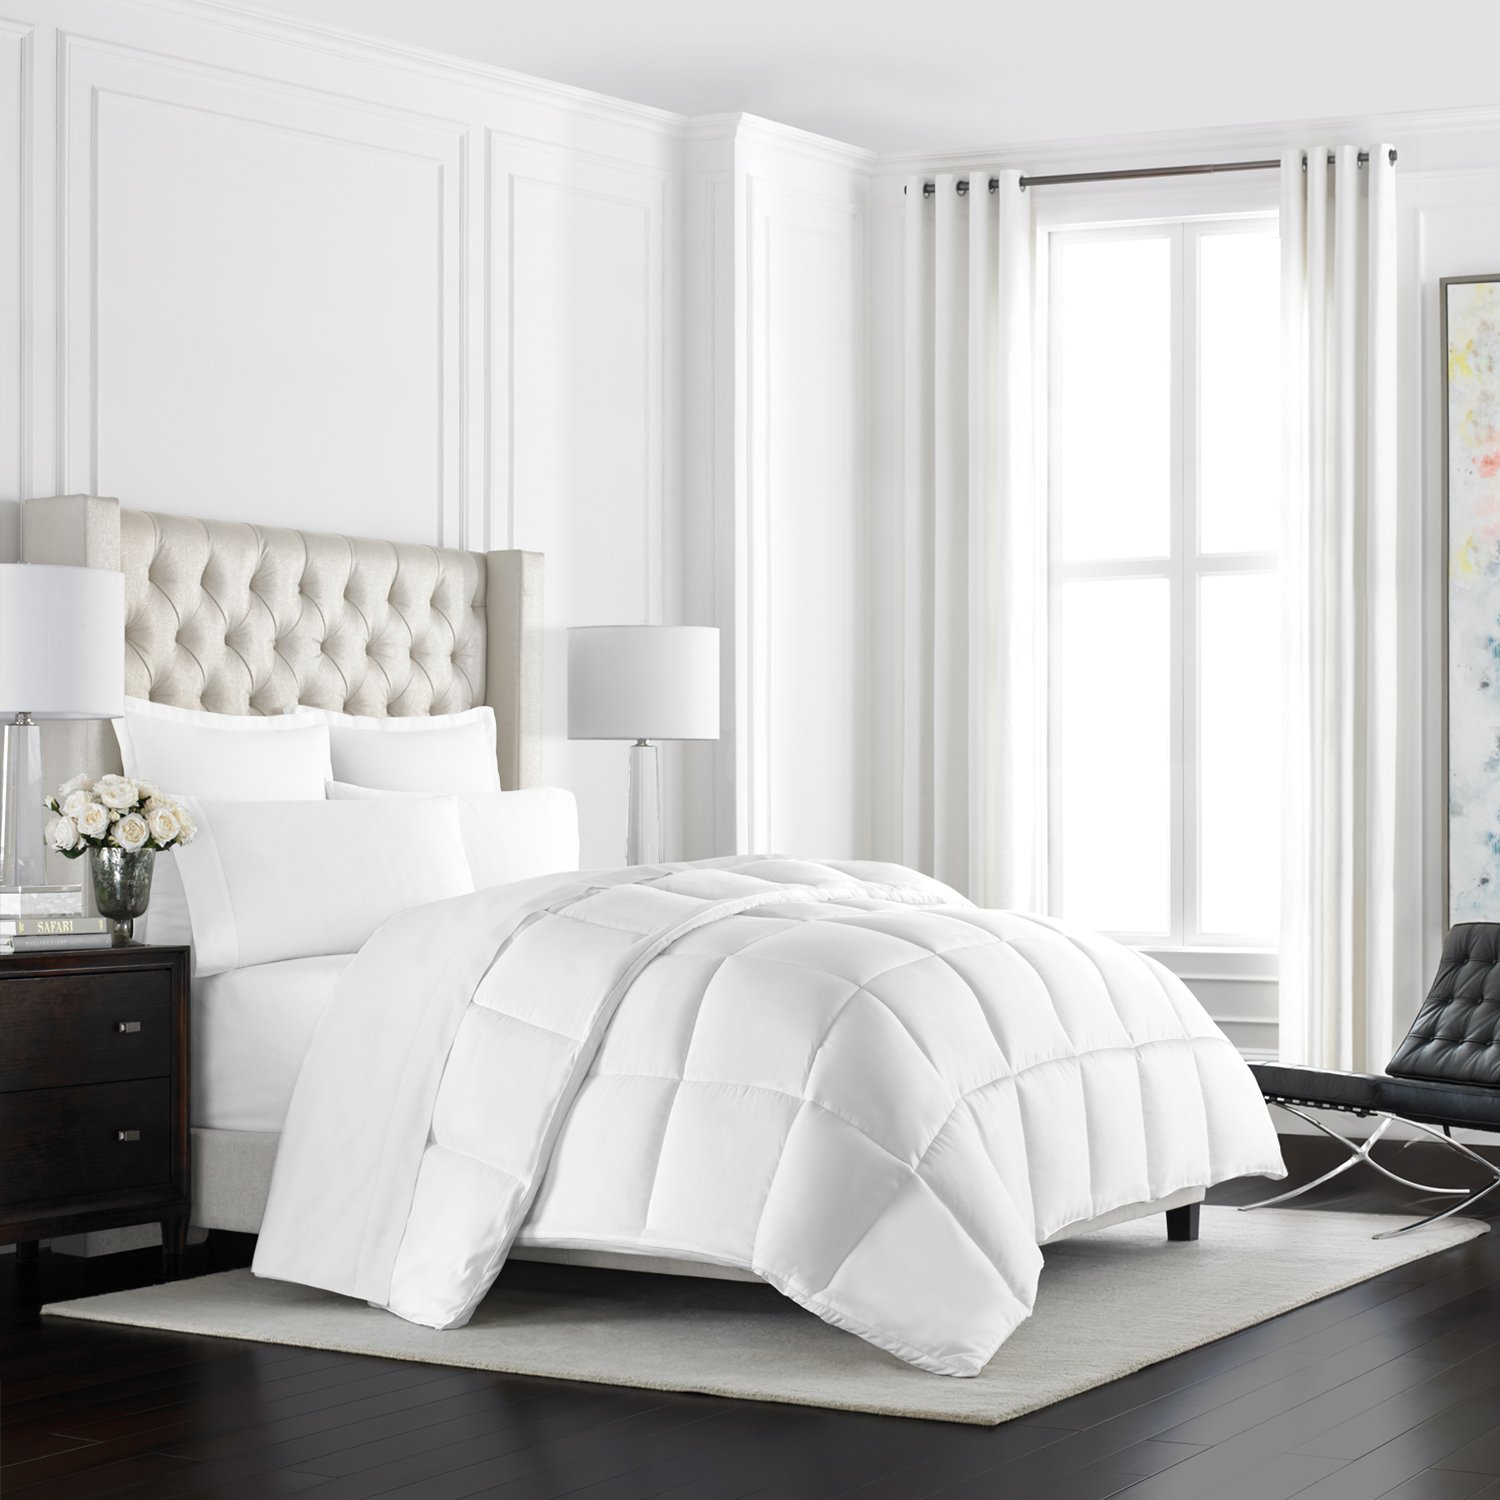 fb bed bedding down comforter collection hotelbafflebox hotel coast feather prod image pacific blog